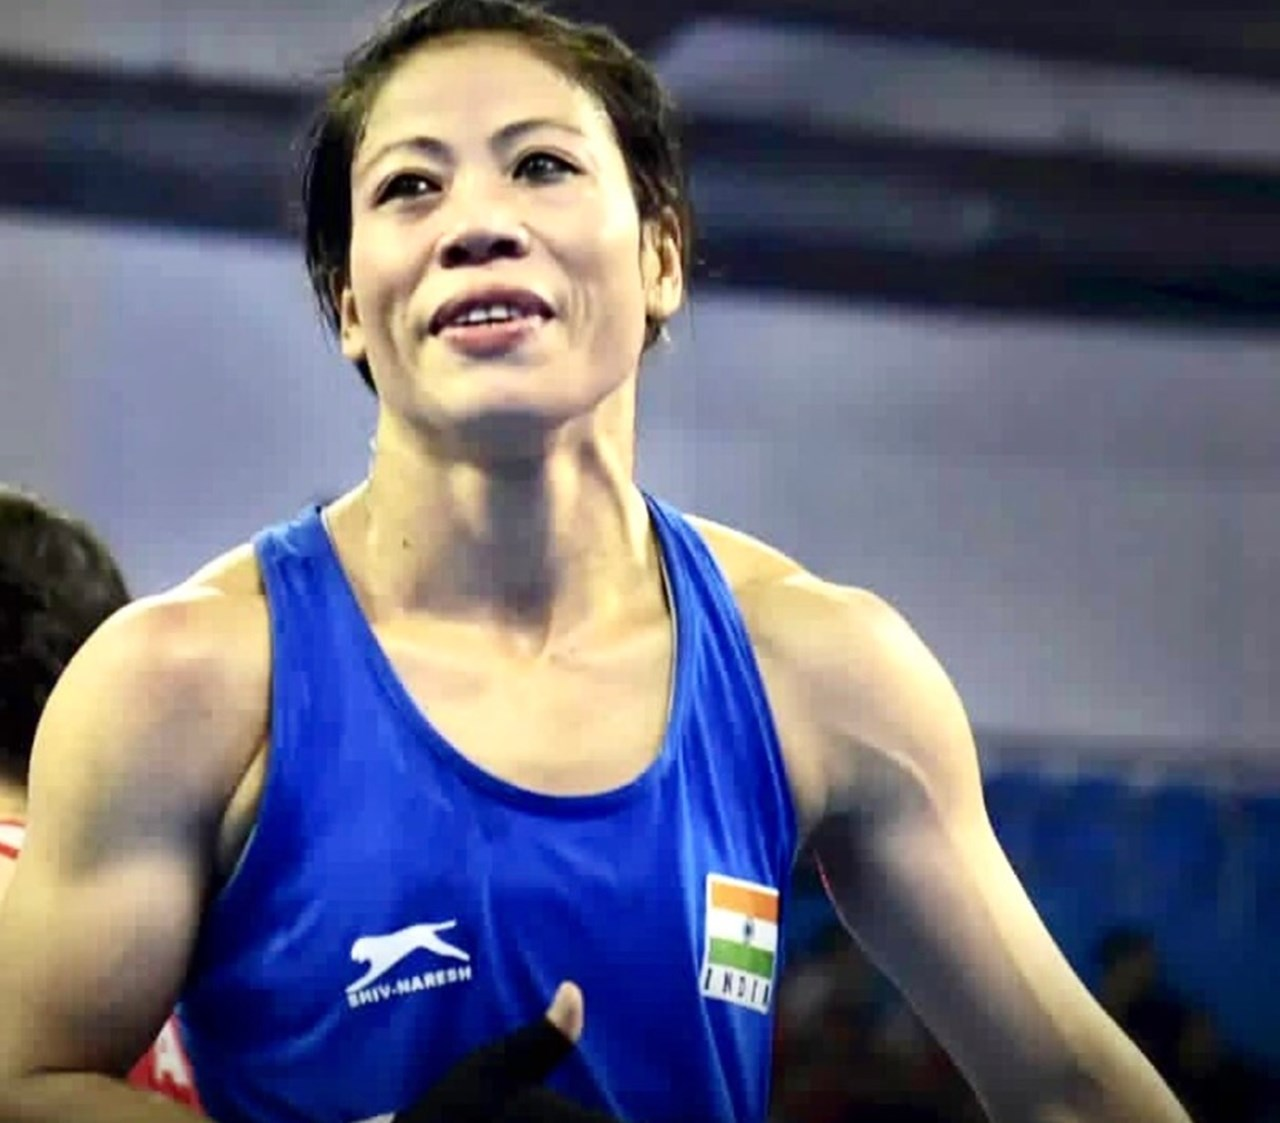 World champion Mary Kom extends contract with IOS